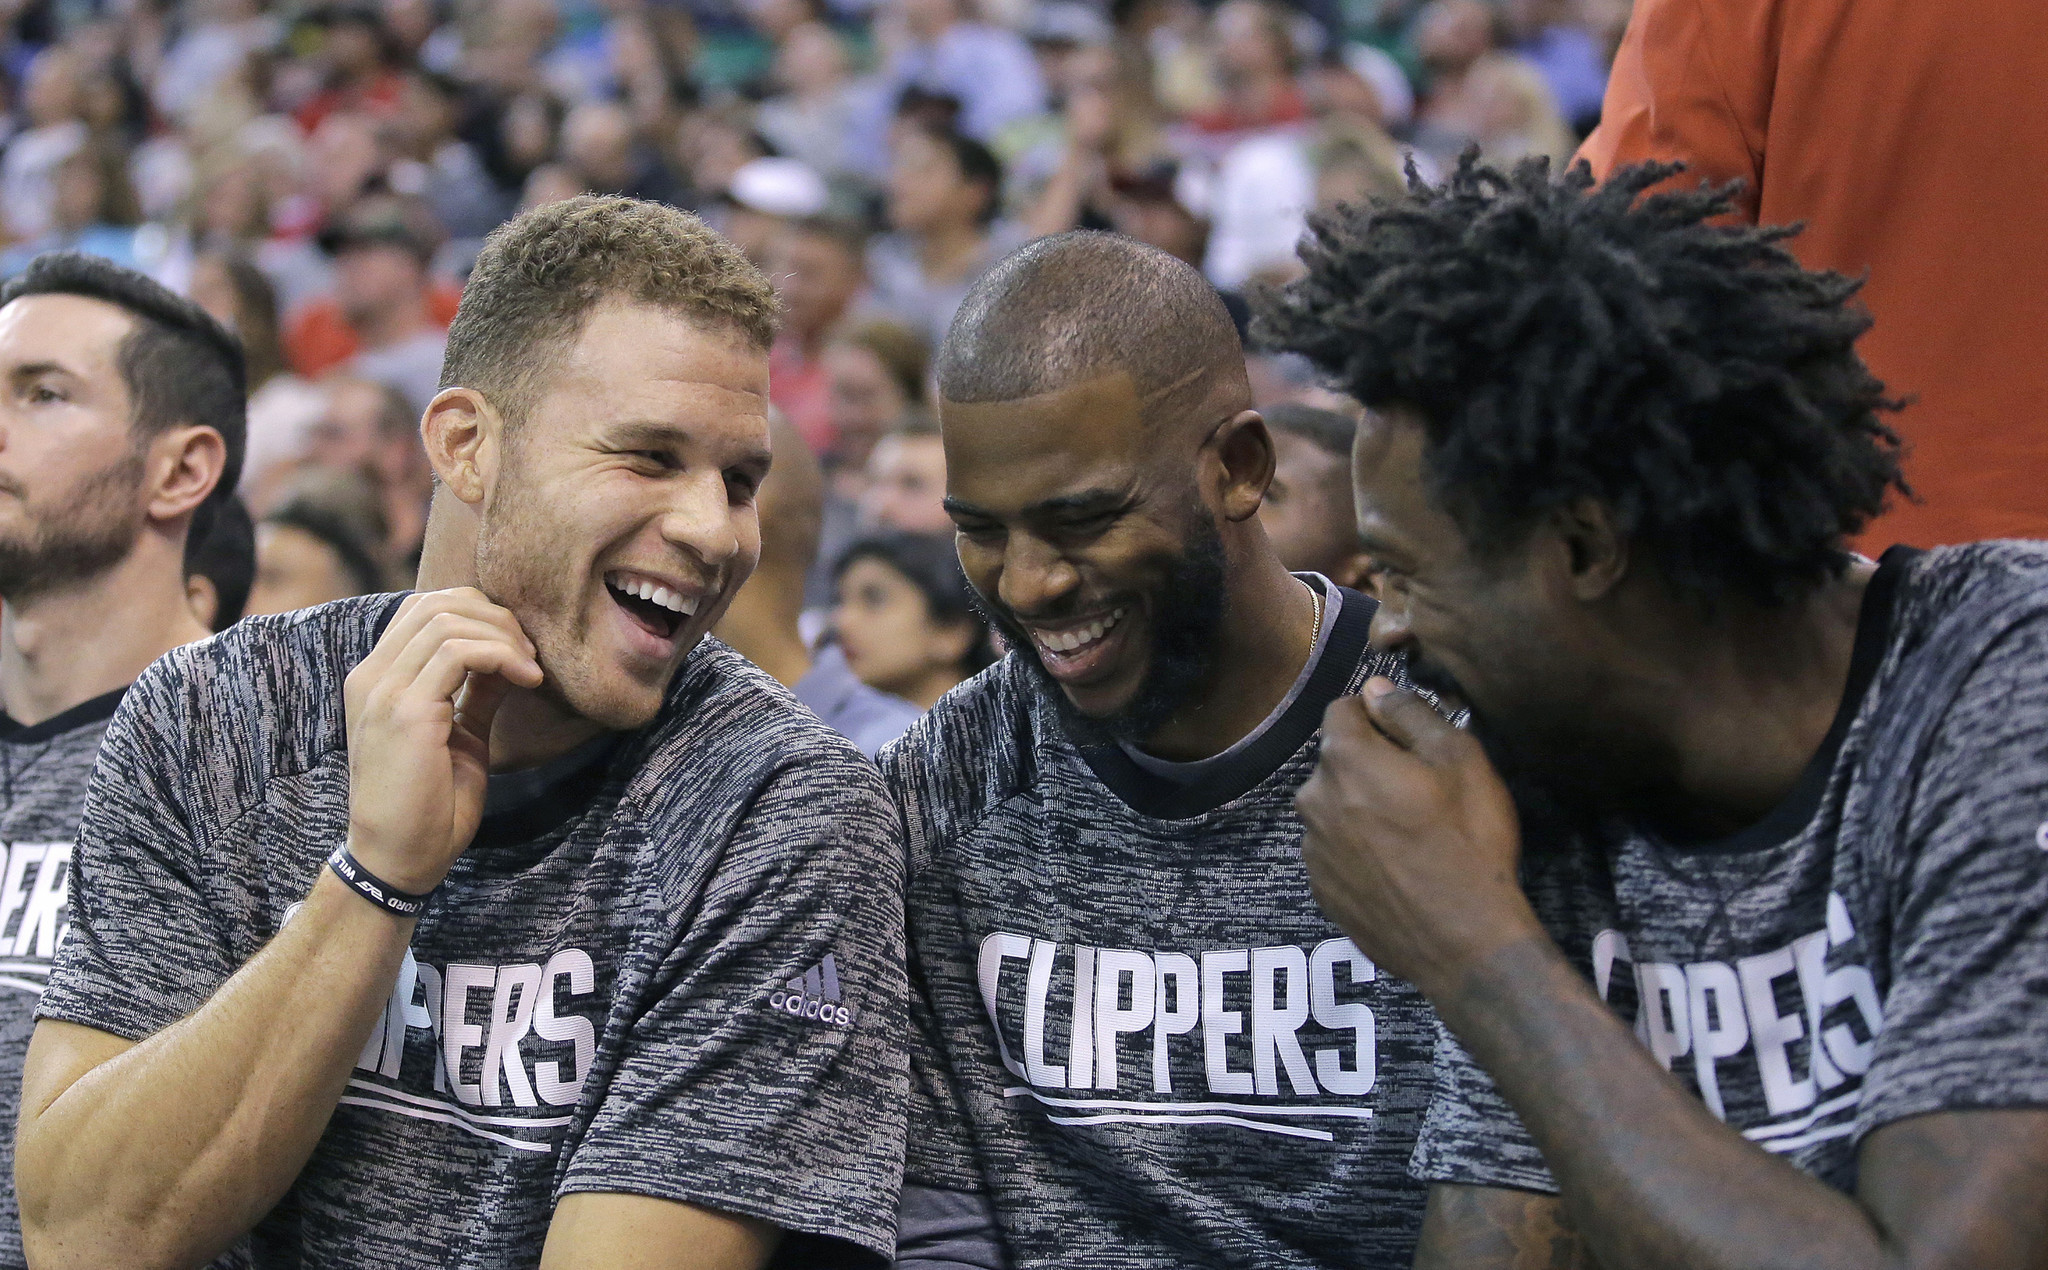 La-sp-clippers-report-20161019-snap